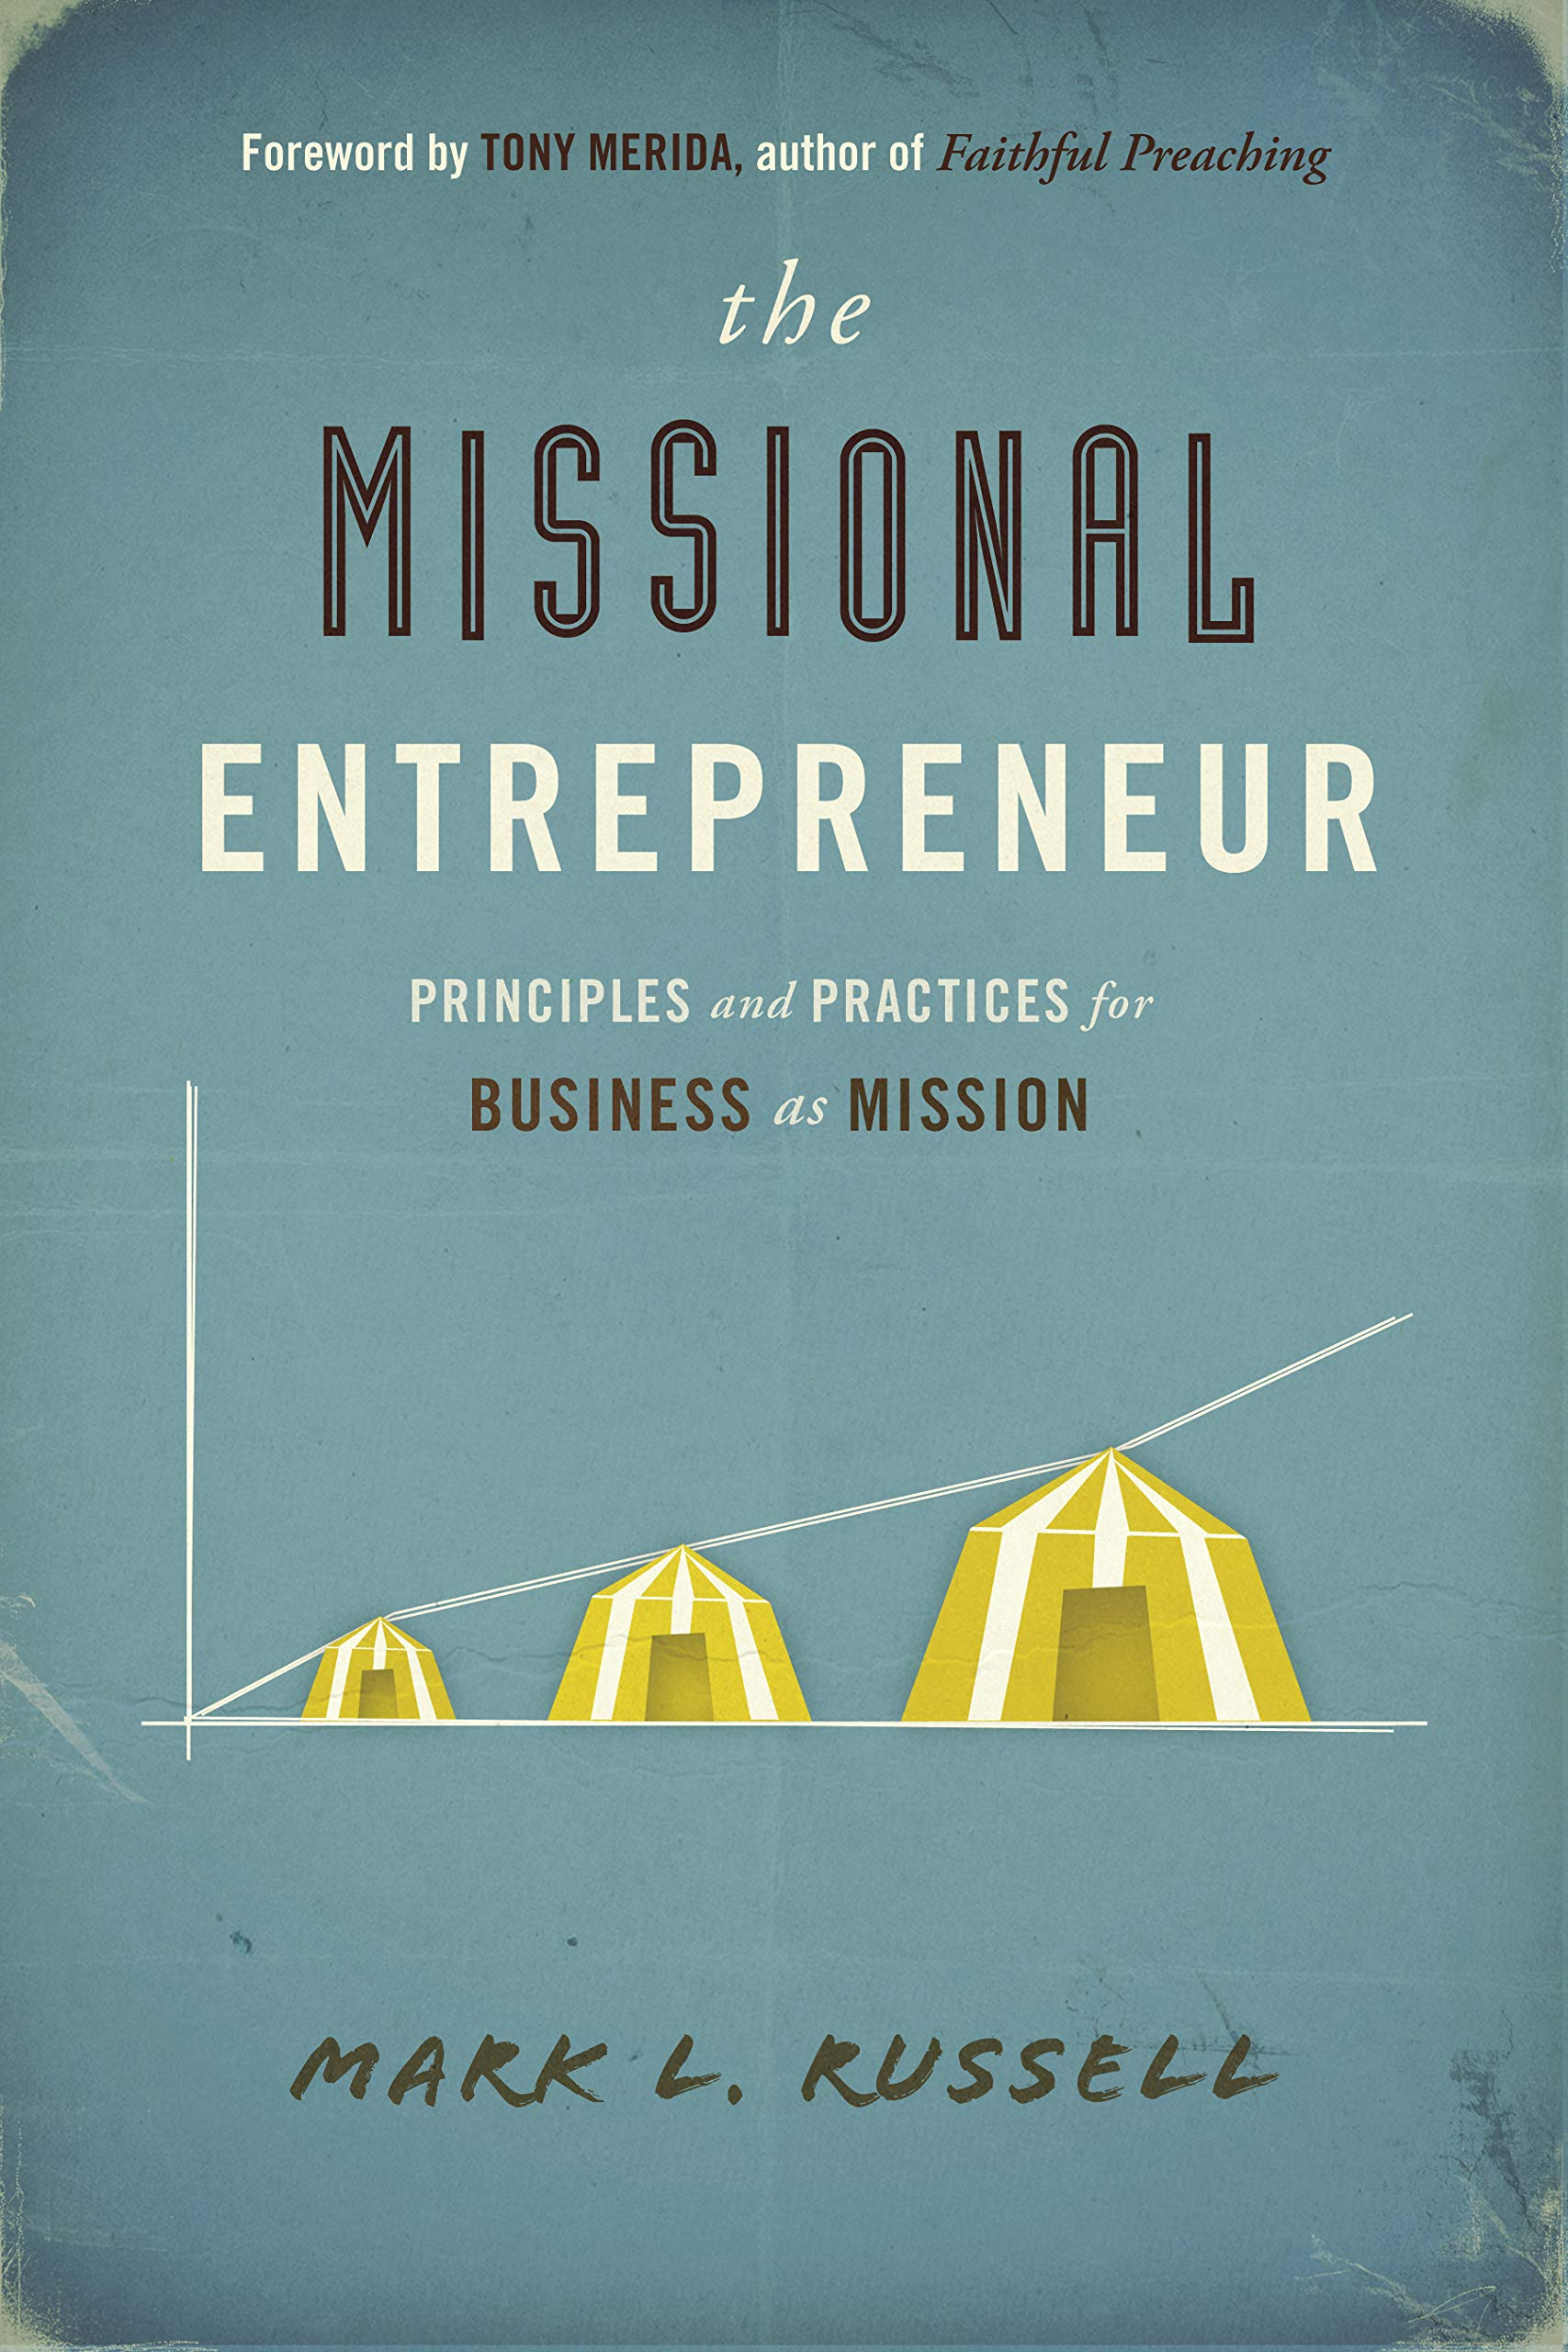 The Missional Entrepreneur: Principles and Practices for Business as Mission PDF